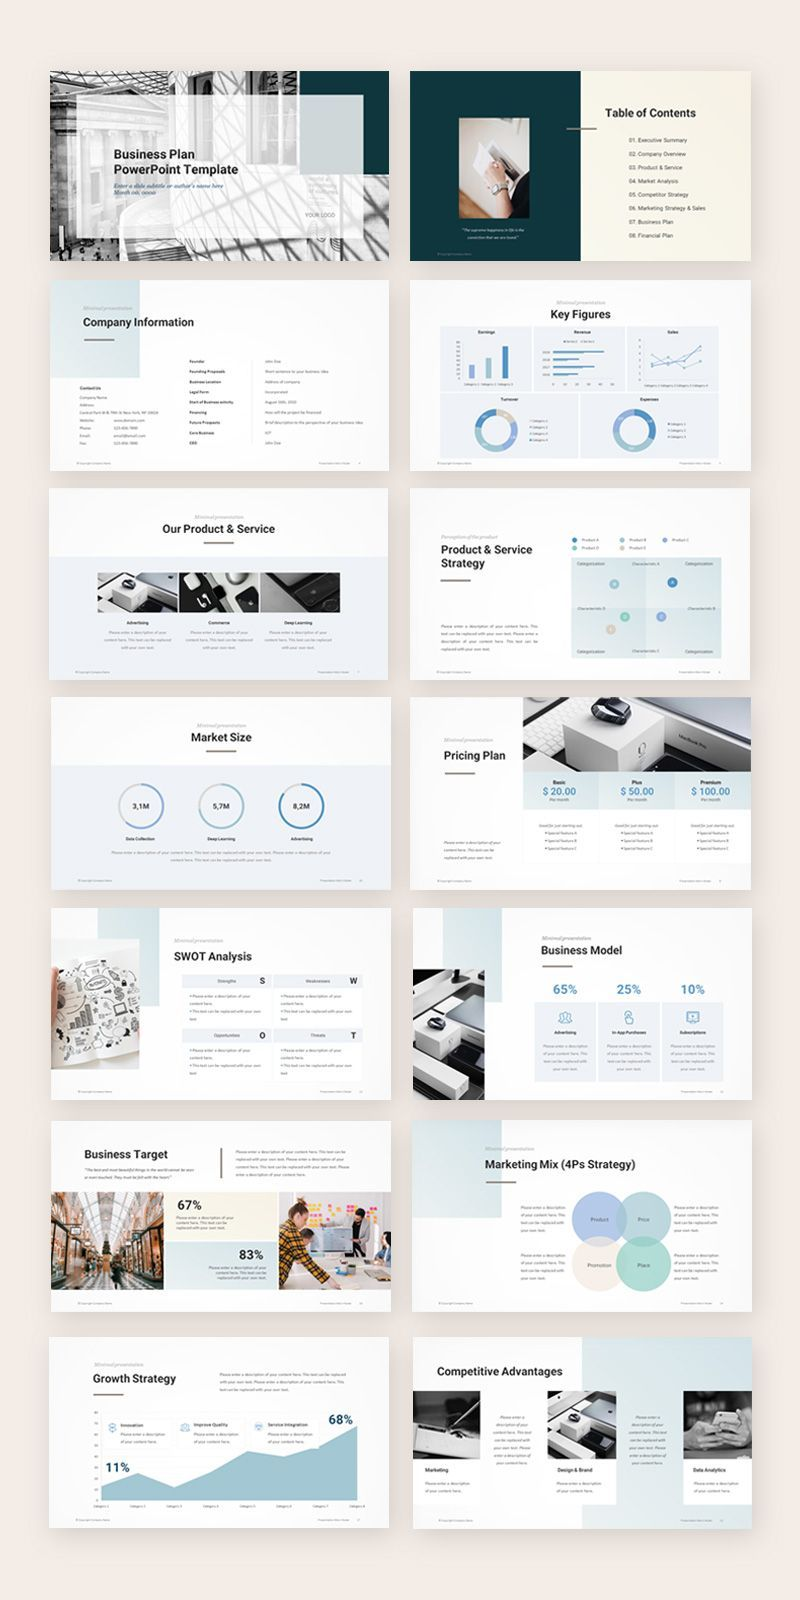 Business Plan Presentation Template in 2020 (mit Bildern